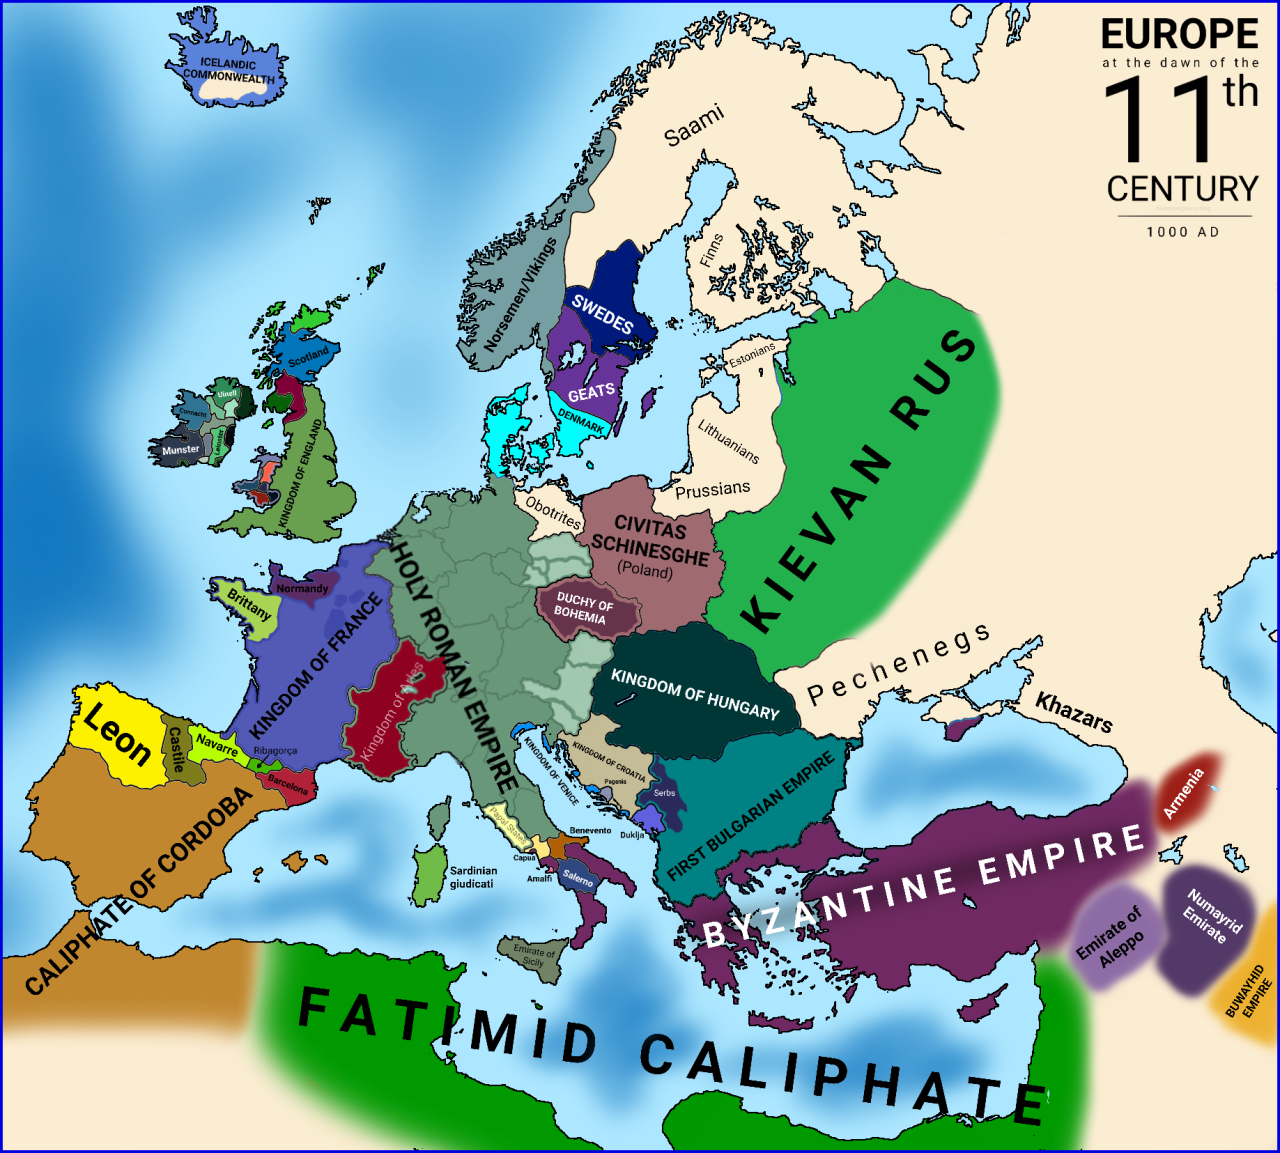 map of 11th century europe Maps on the Web — Europe at the turn of the 11th century. in 2020